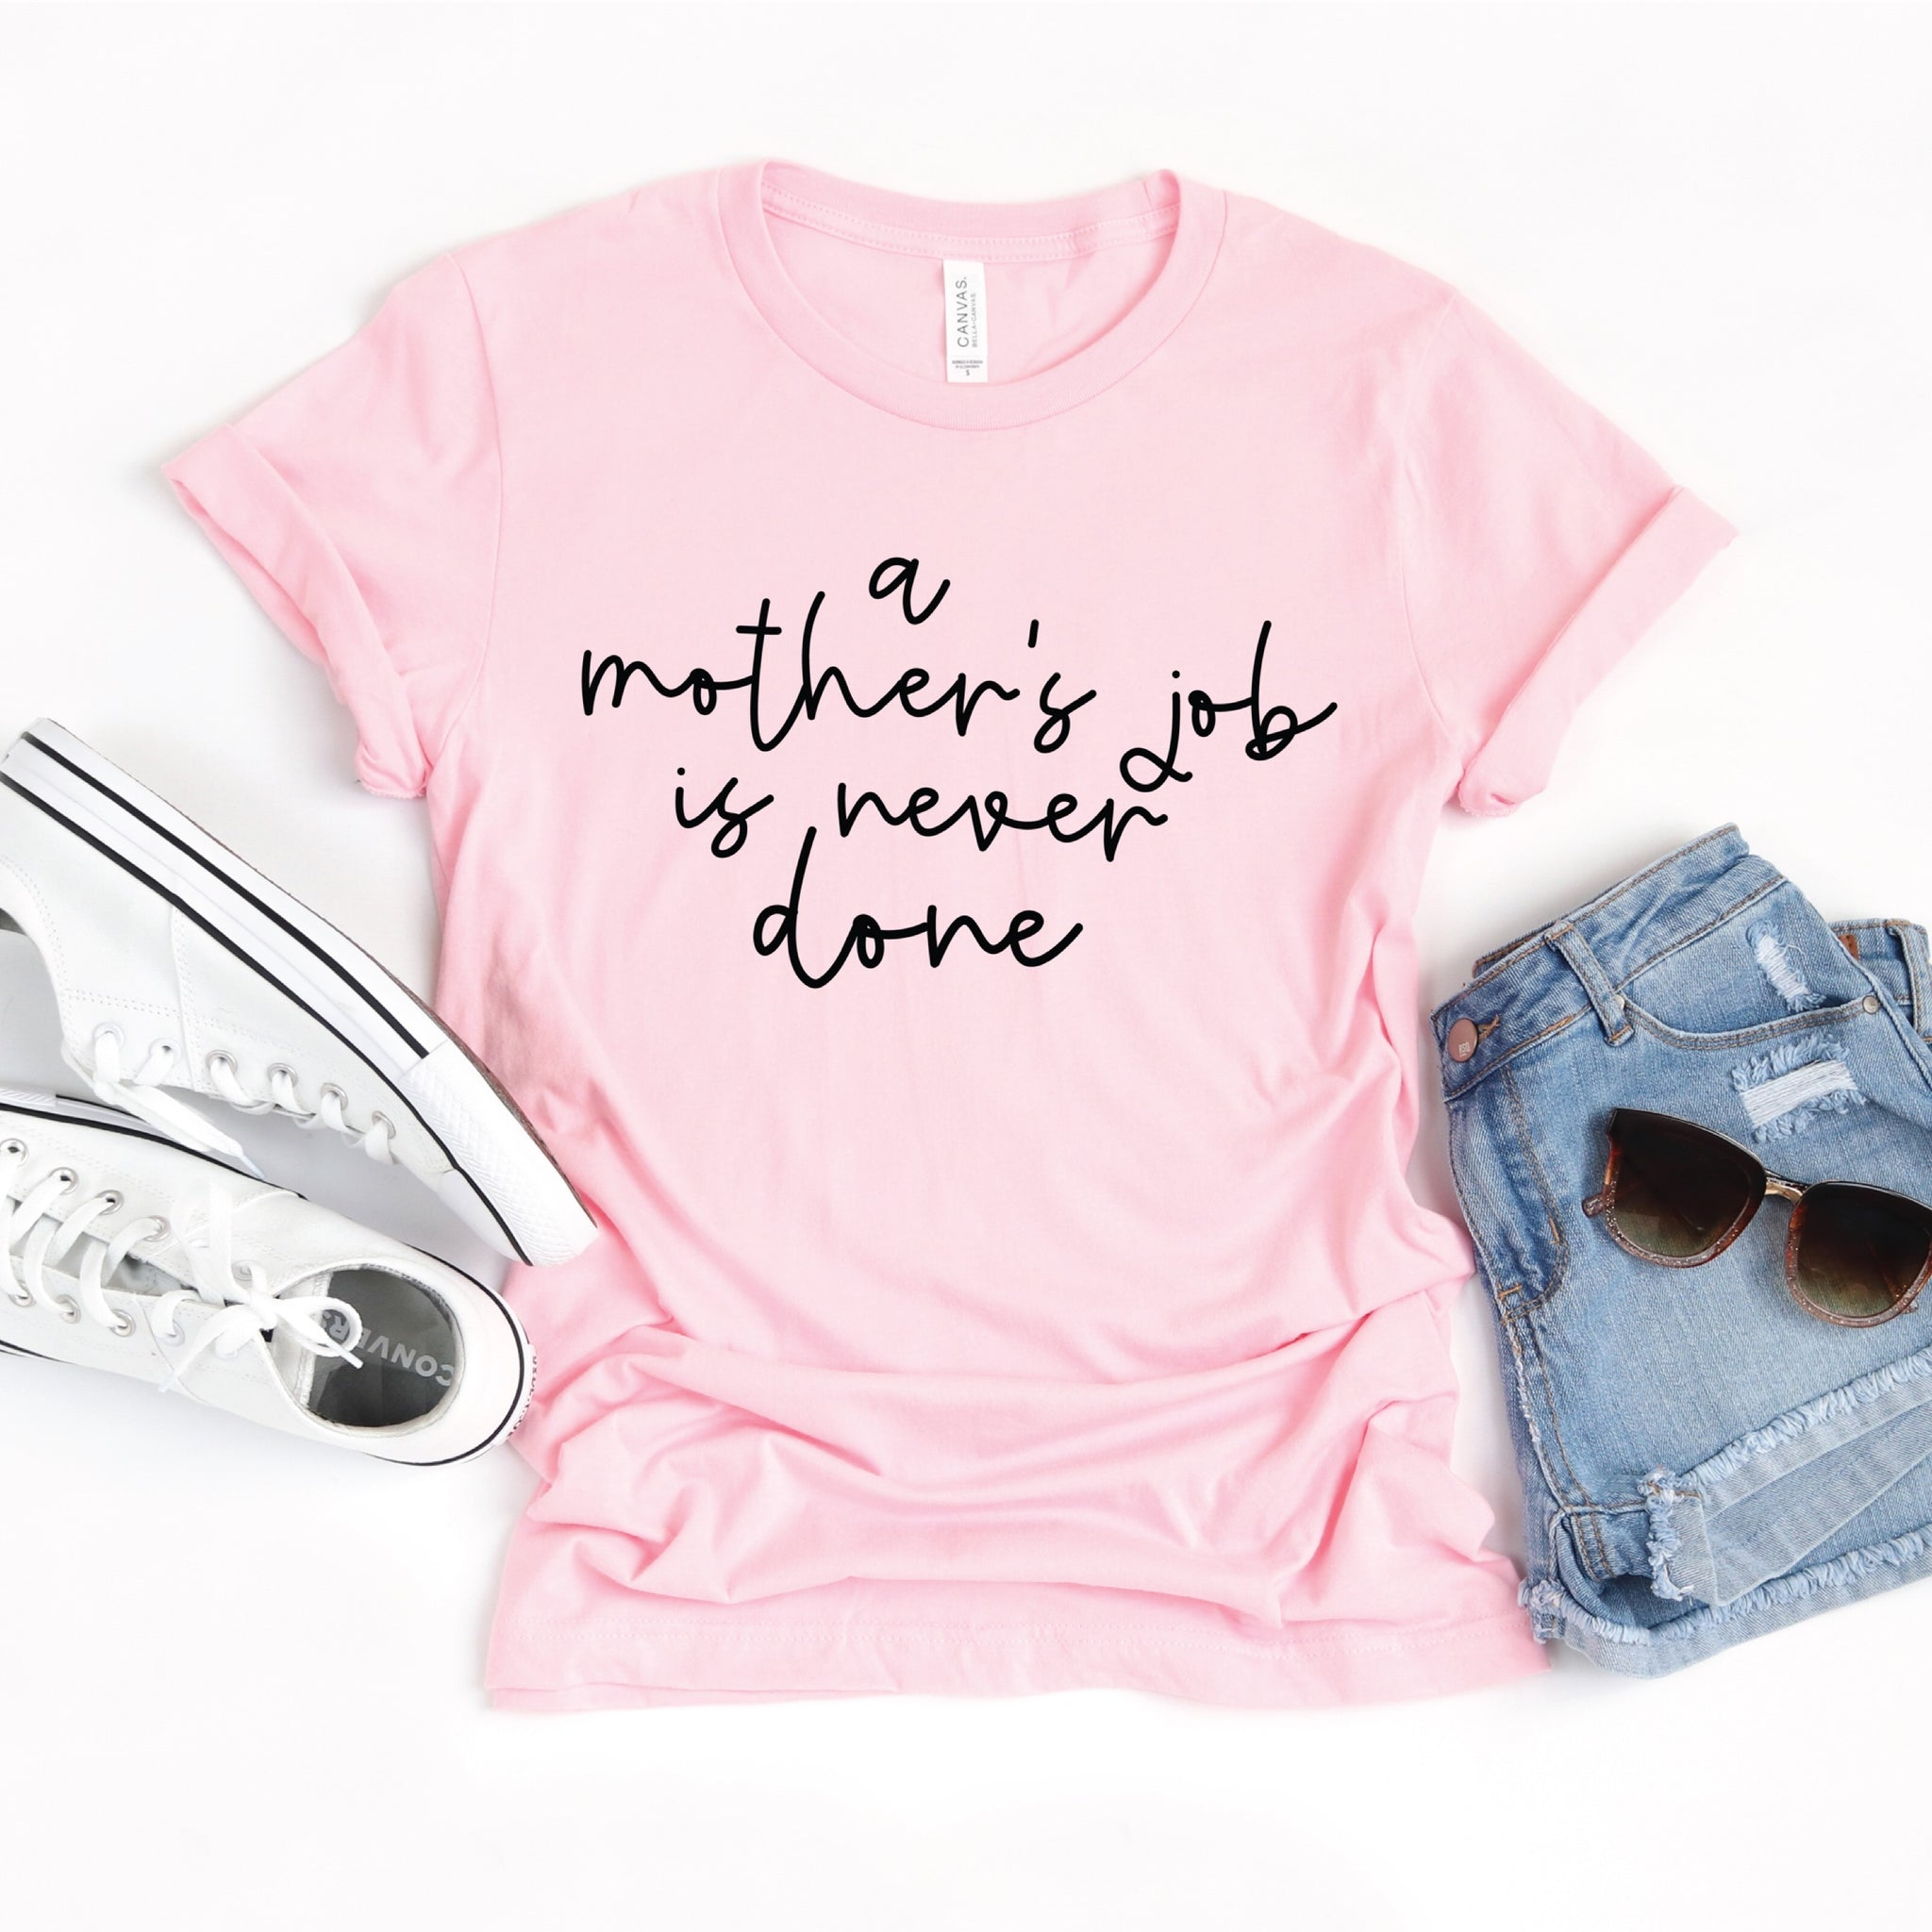 PREORDER A Mother's Job is Never Done [pink]